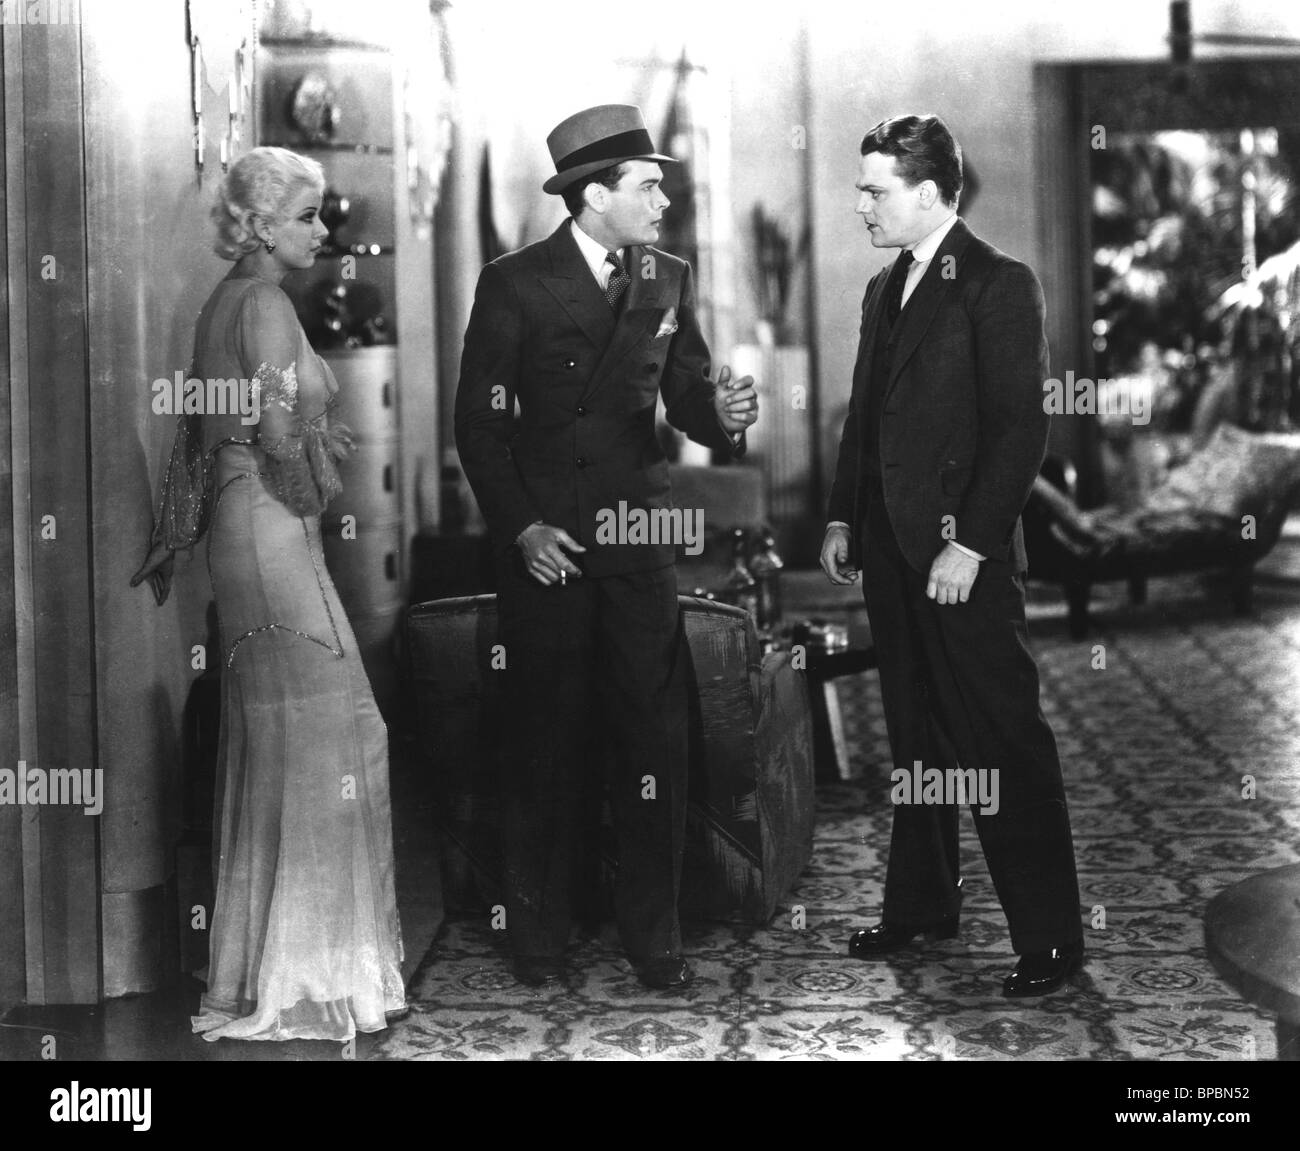 JEAN HARLOW, JAMES CAGNEY, EDWARD WOODS, THE PUBLIC ENEMY, 1931 - Stock Image